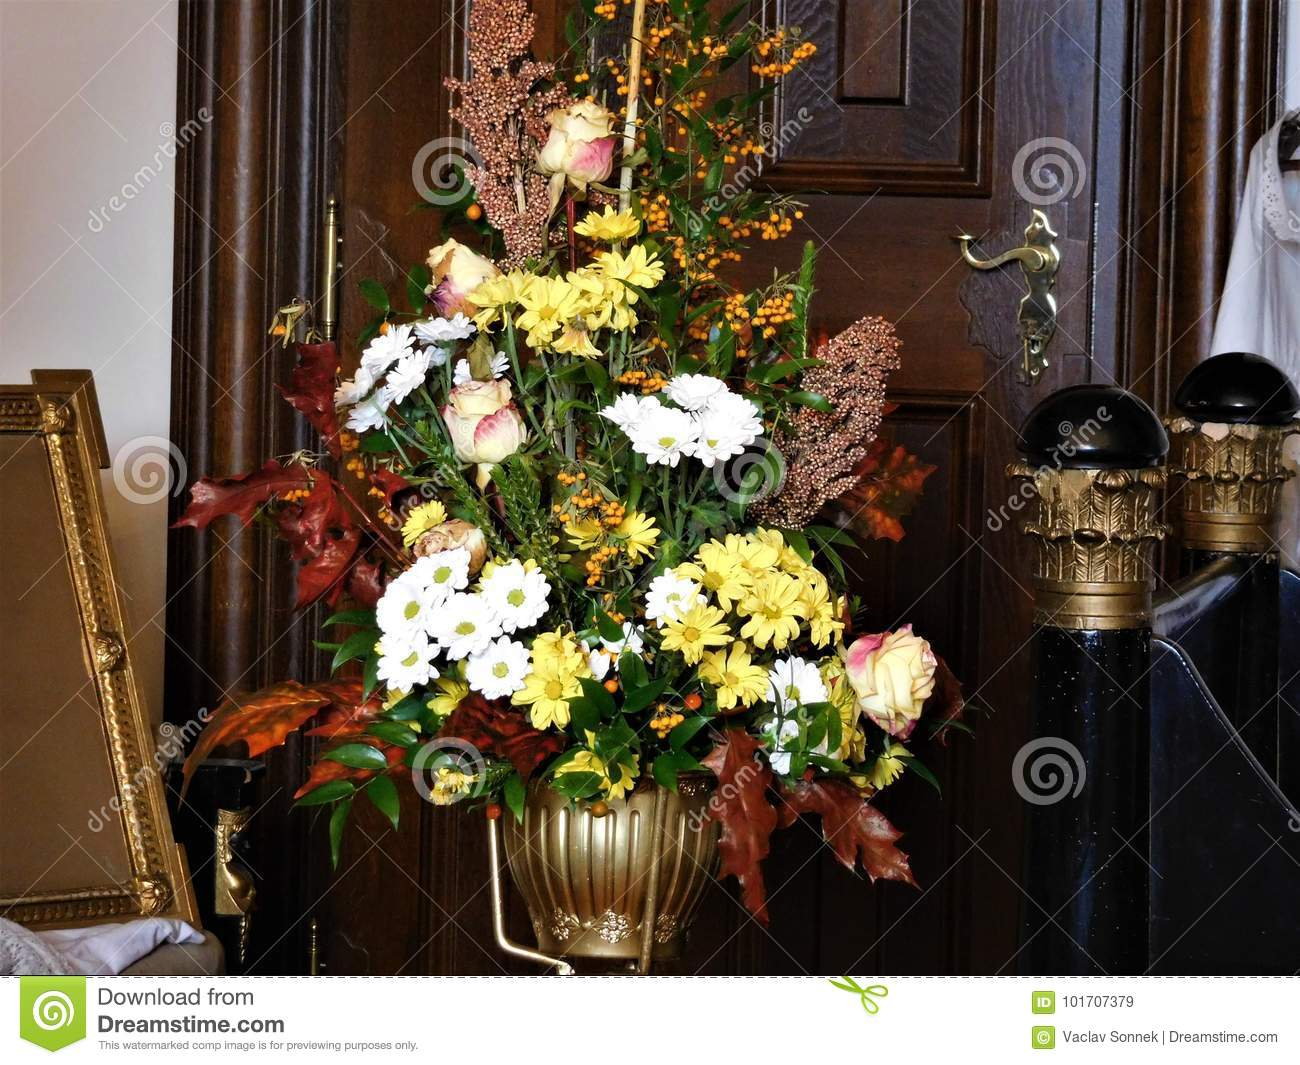 The Beautiful Bouquet For Decoration At Home Or Wedding Stock